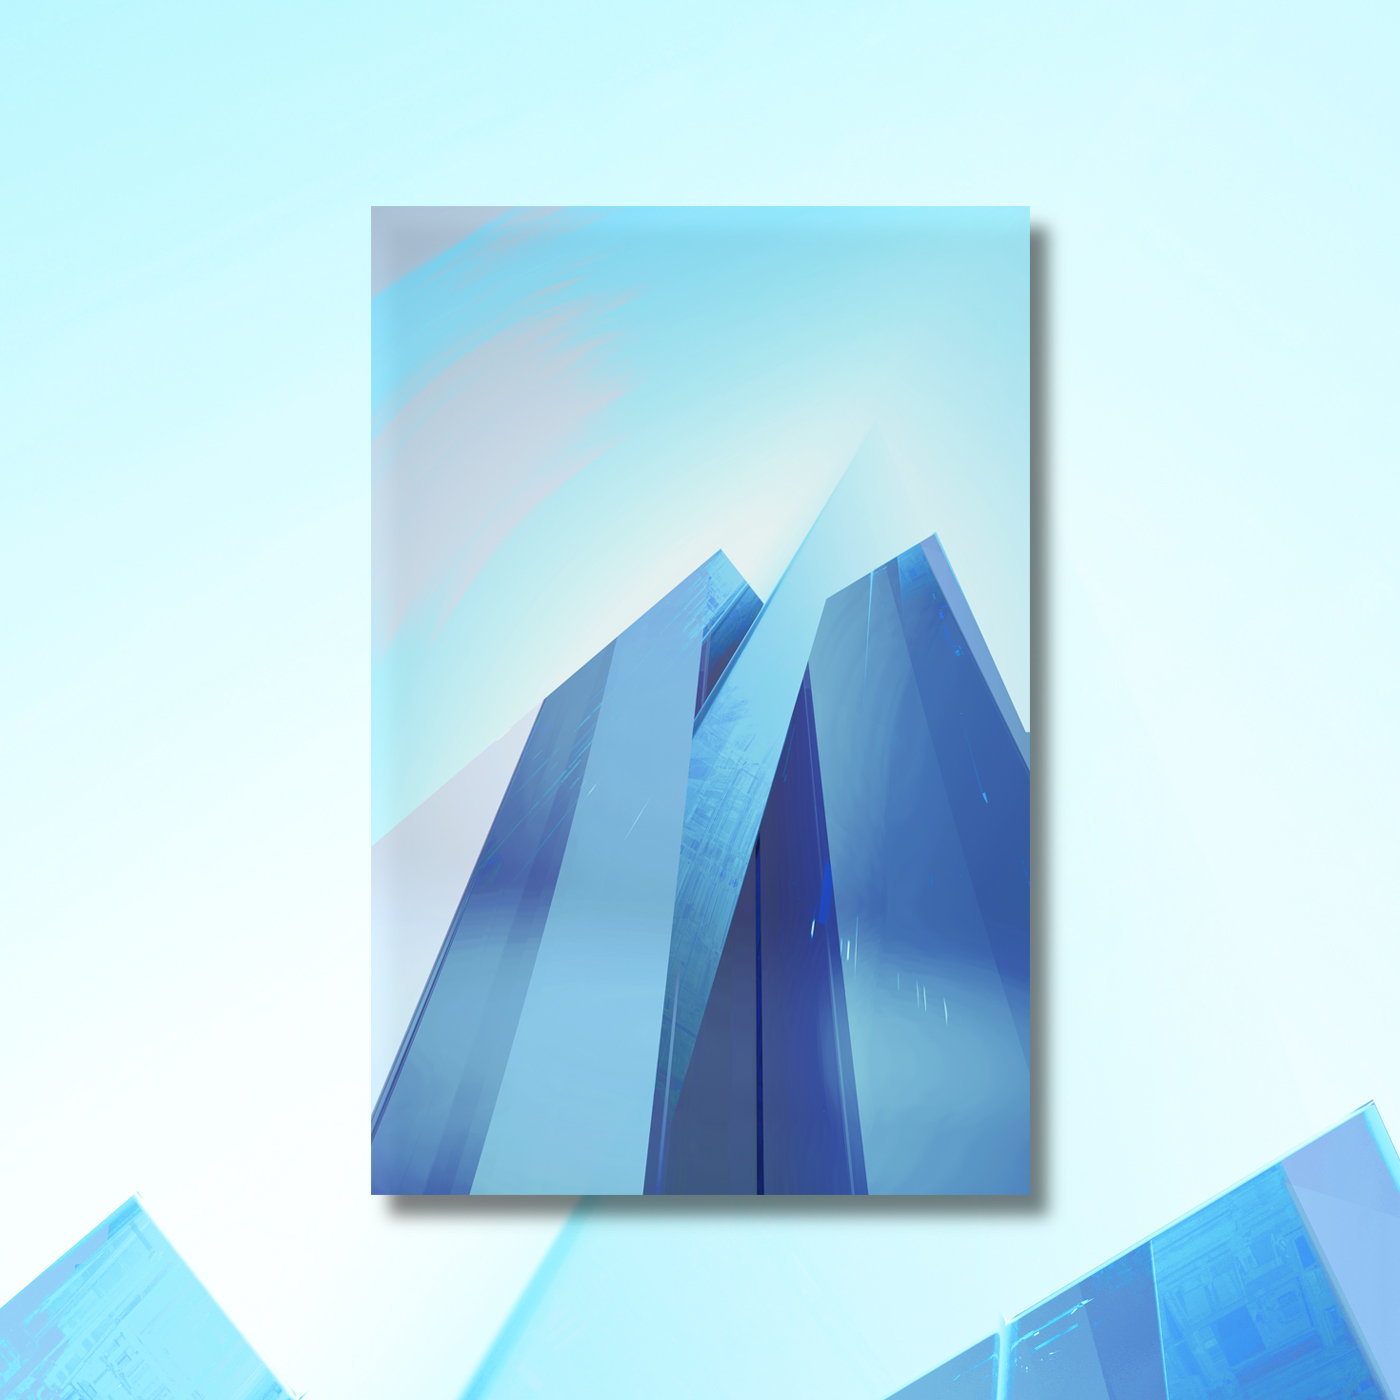 Abstract graphic layers for design projects